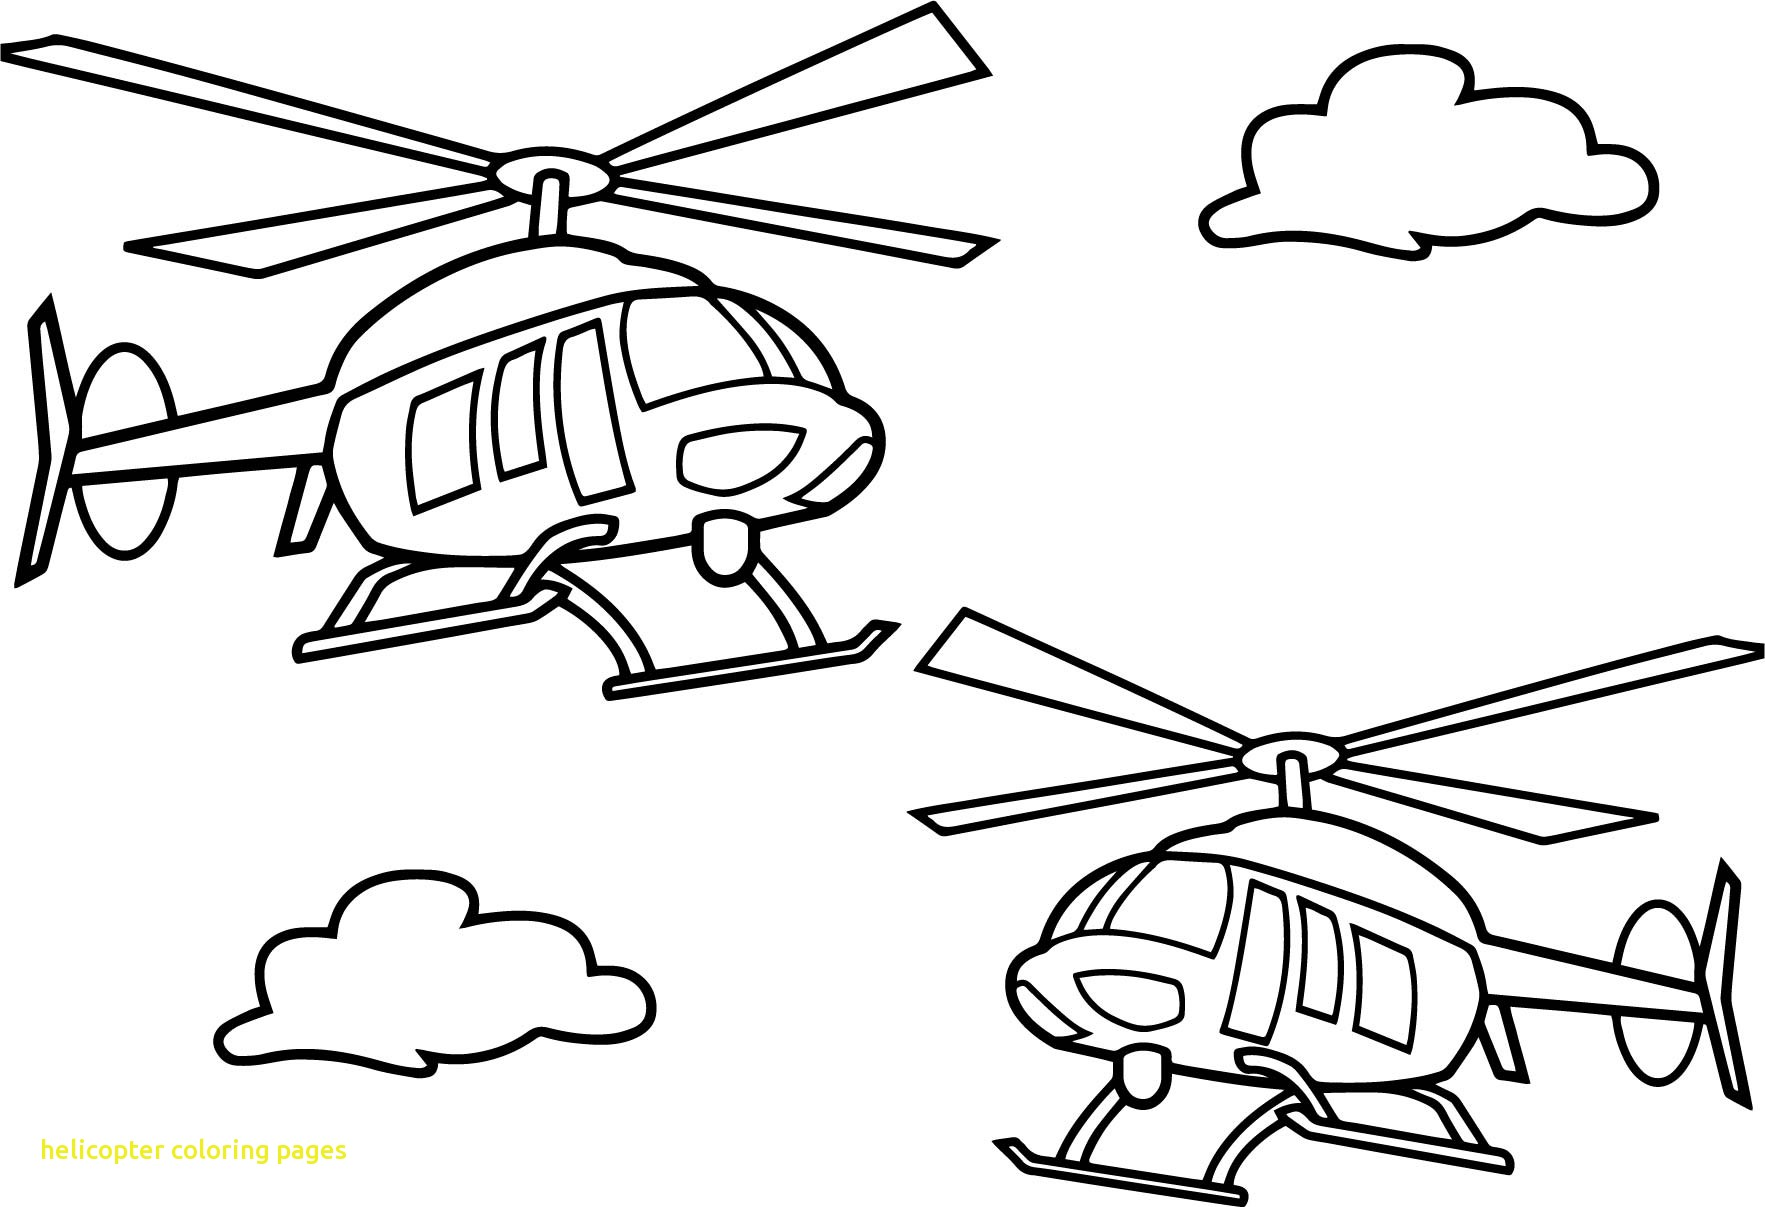 1765x1207 Fresh Helicopters Coloring Pages Gallery Printable Sheet Inside